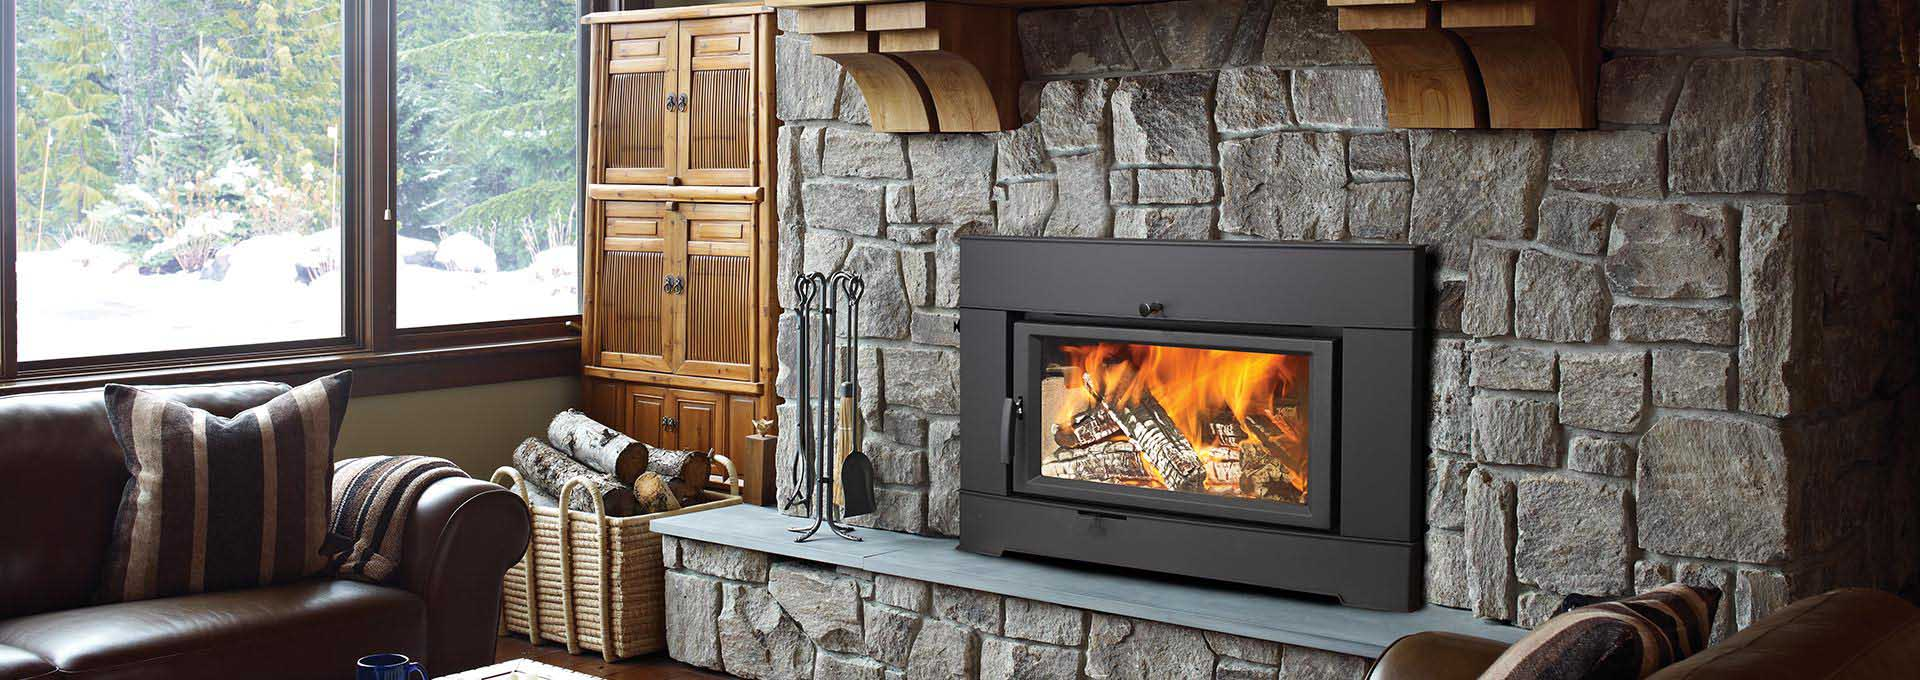 Top 8 fireplace insert trends of 2017 for Modern wood burning insert